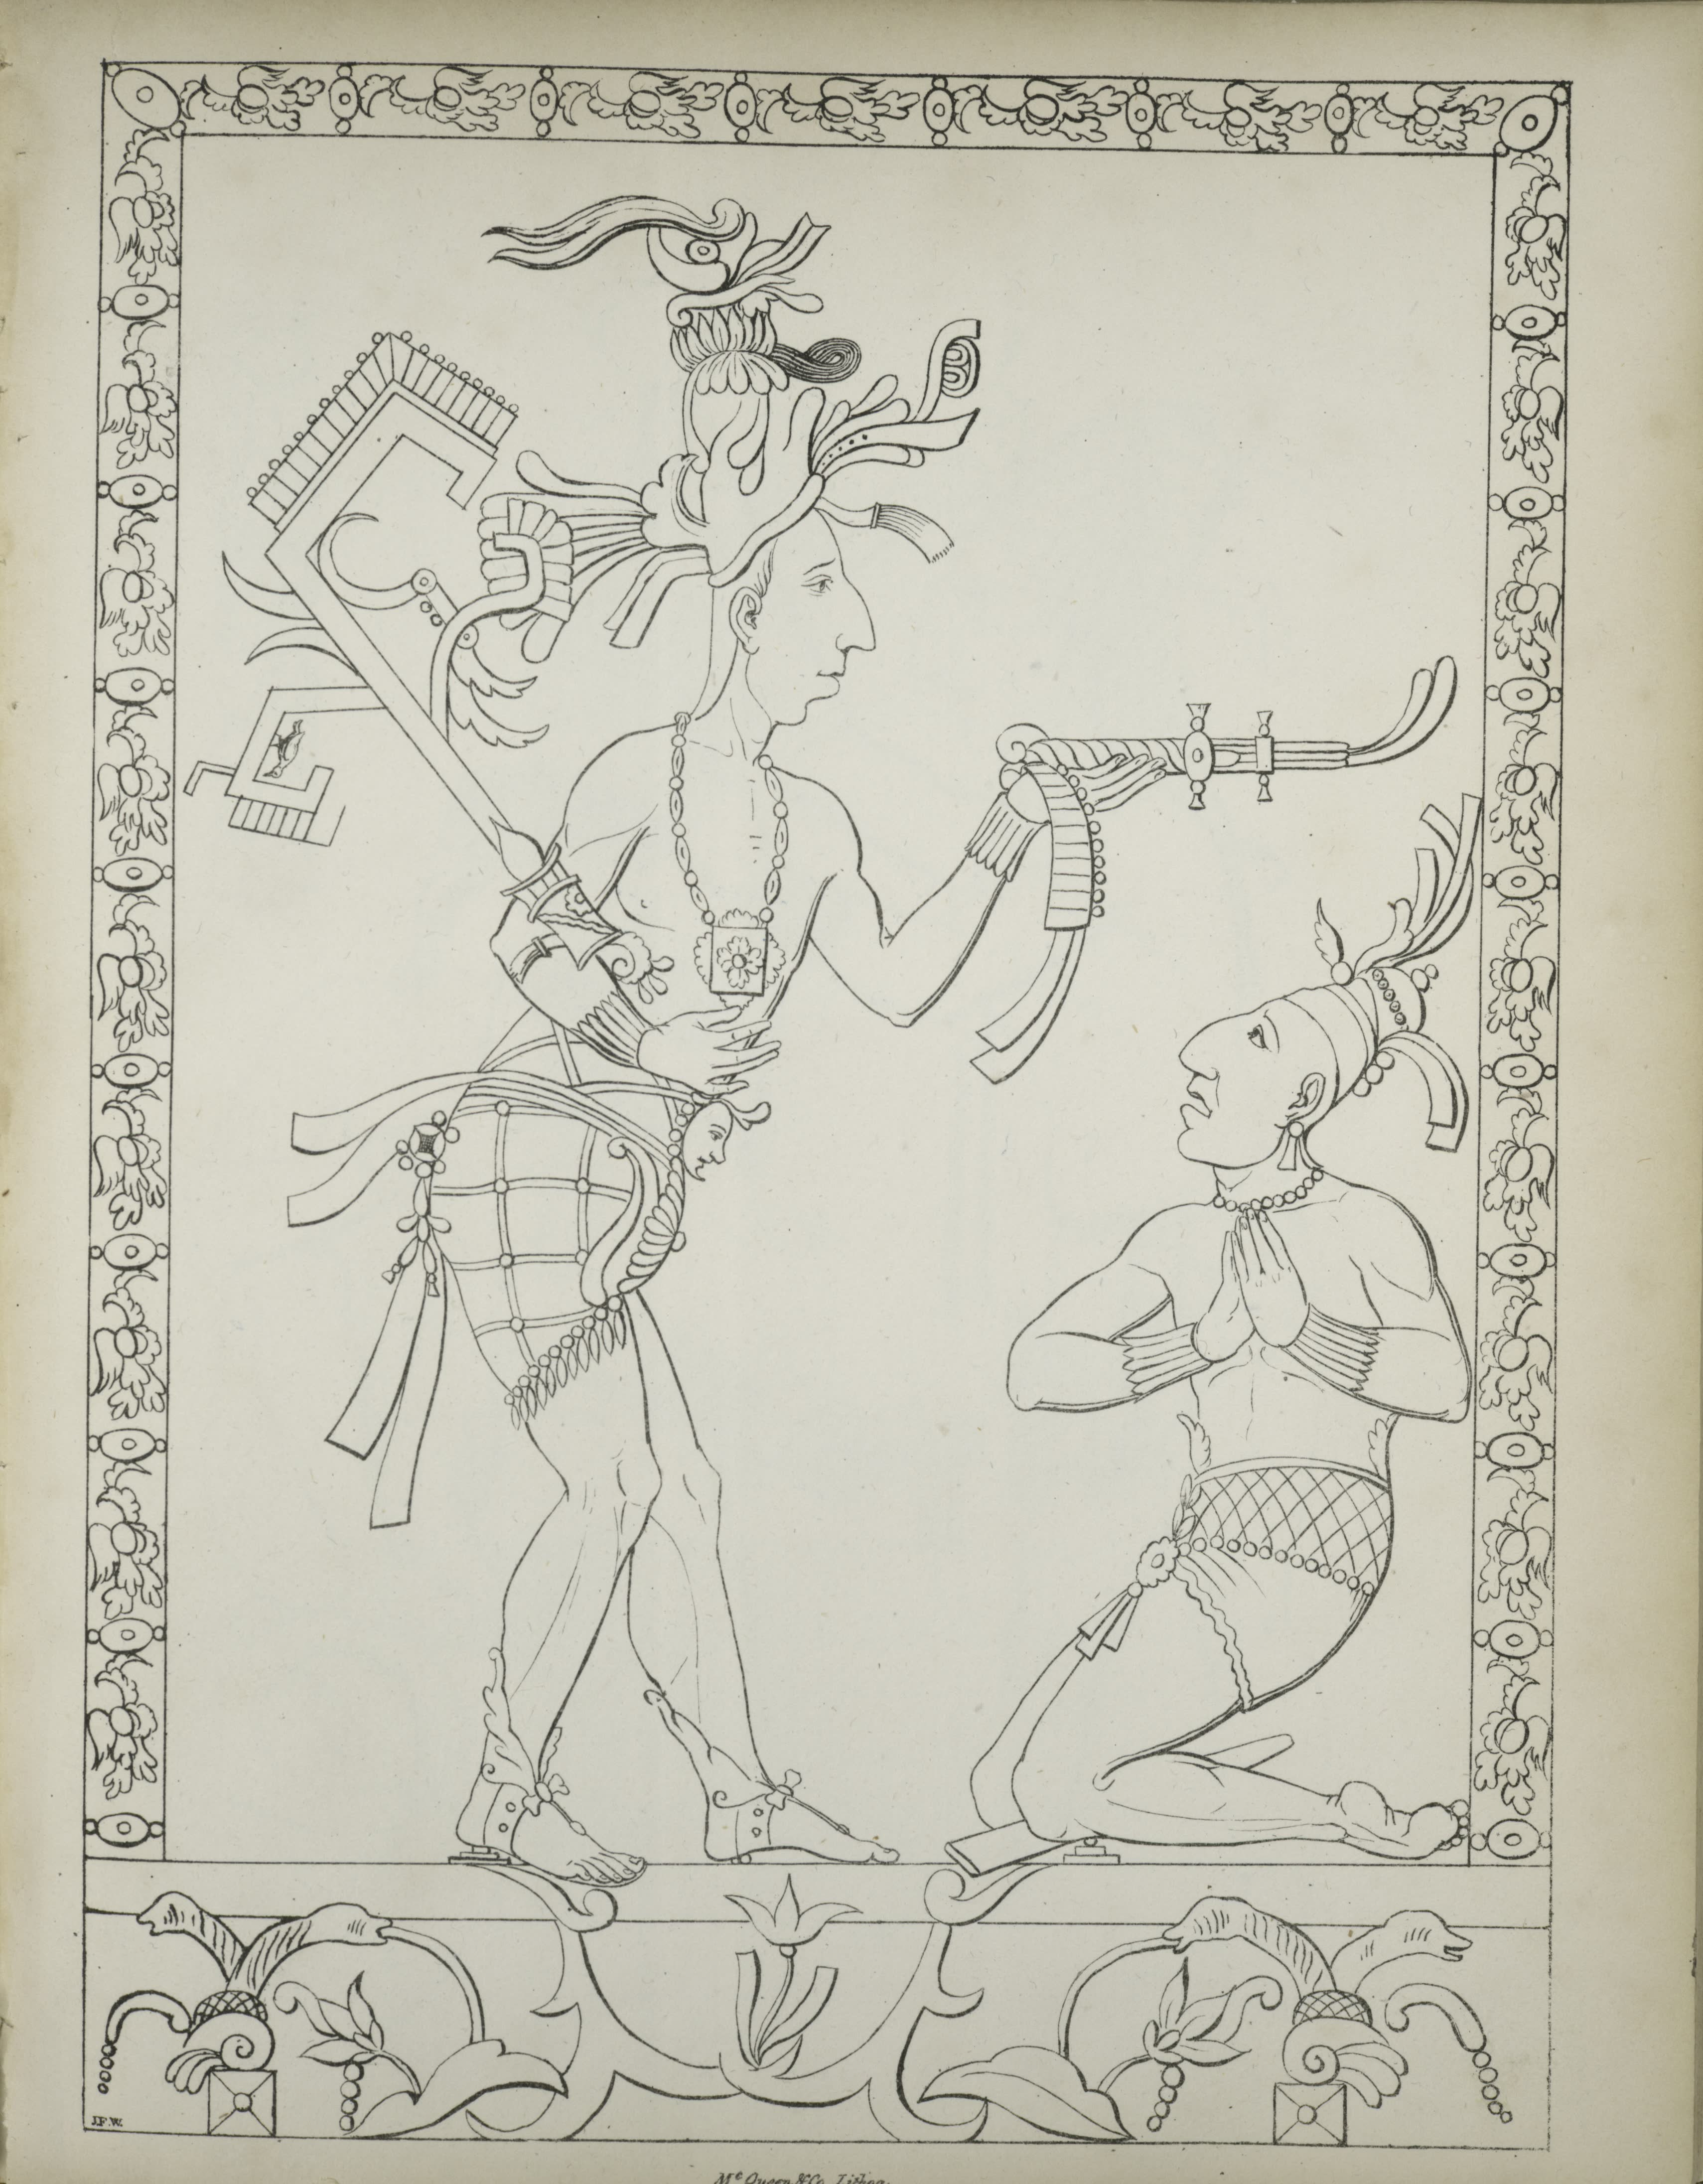 Description of the Ruins of an Ancient City - Two figures, one standing, one kneeling, with naturalistic boarder (1822)